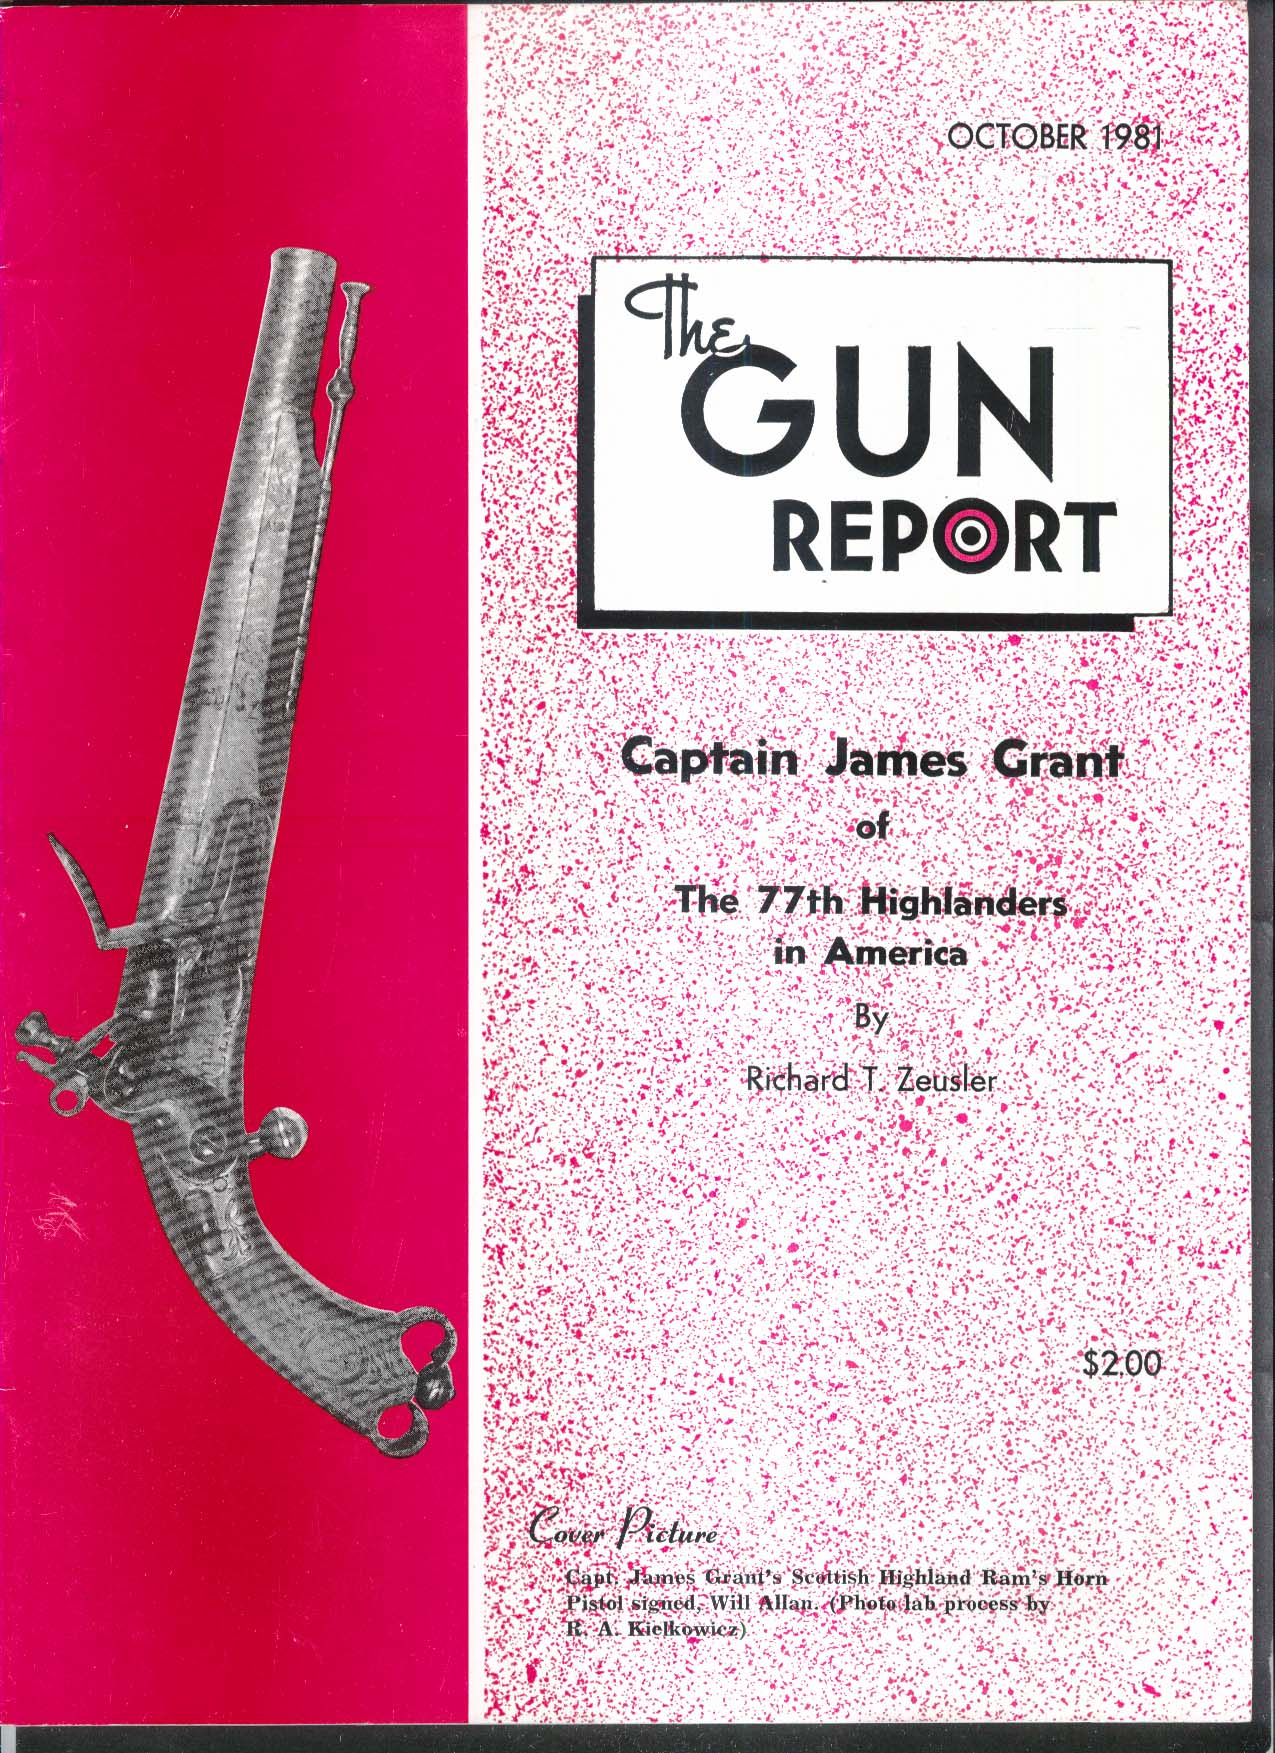 GUN REPORT Captain James Grant Highlanders Pistol Finnish Military 10 1981